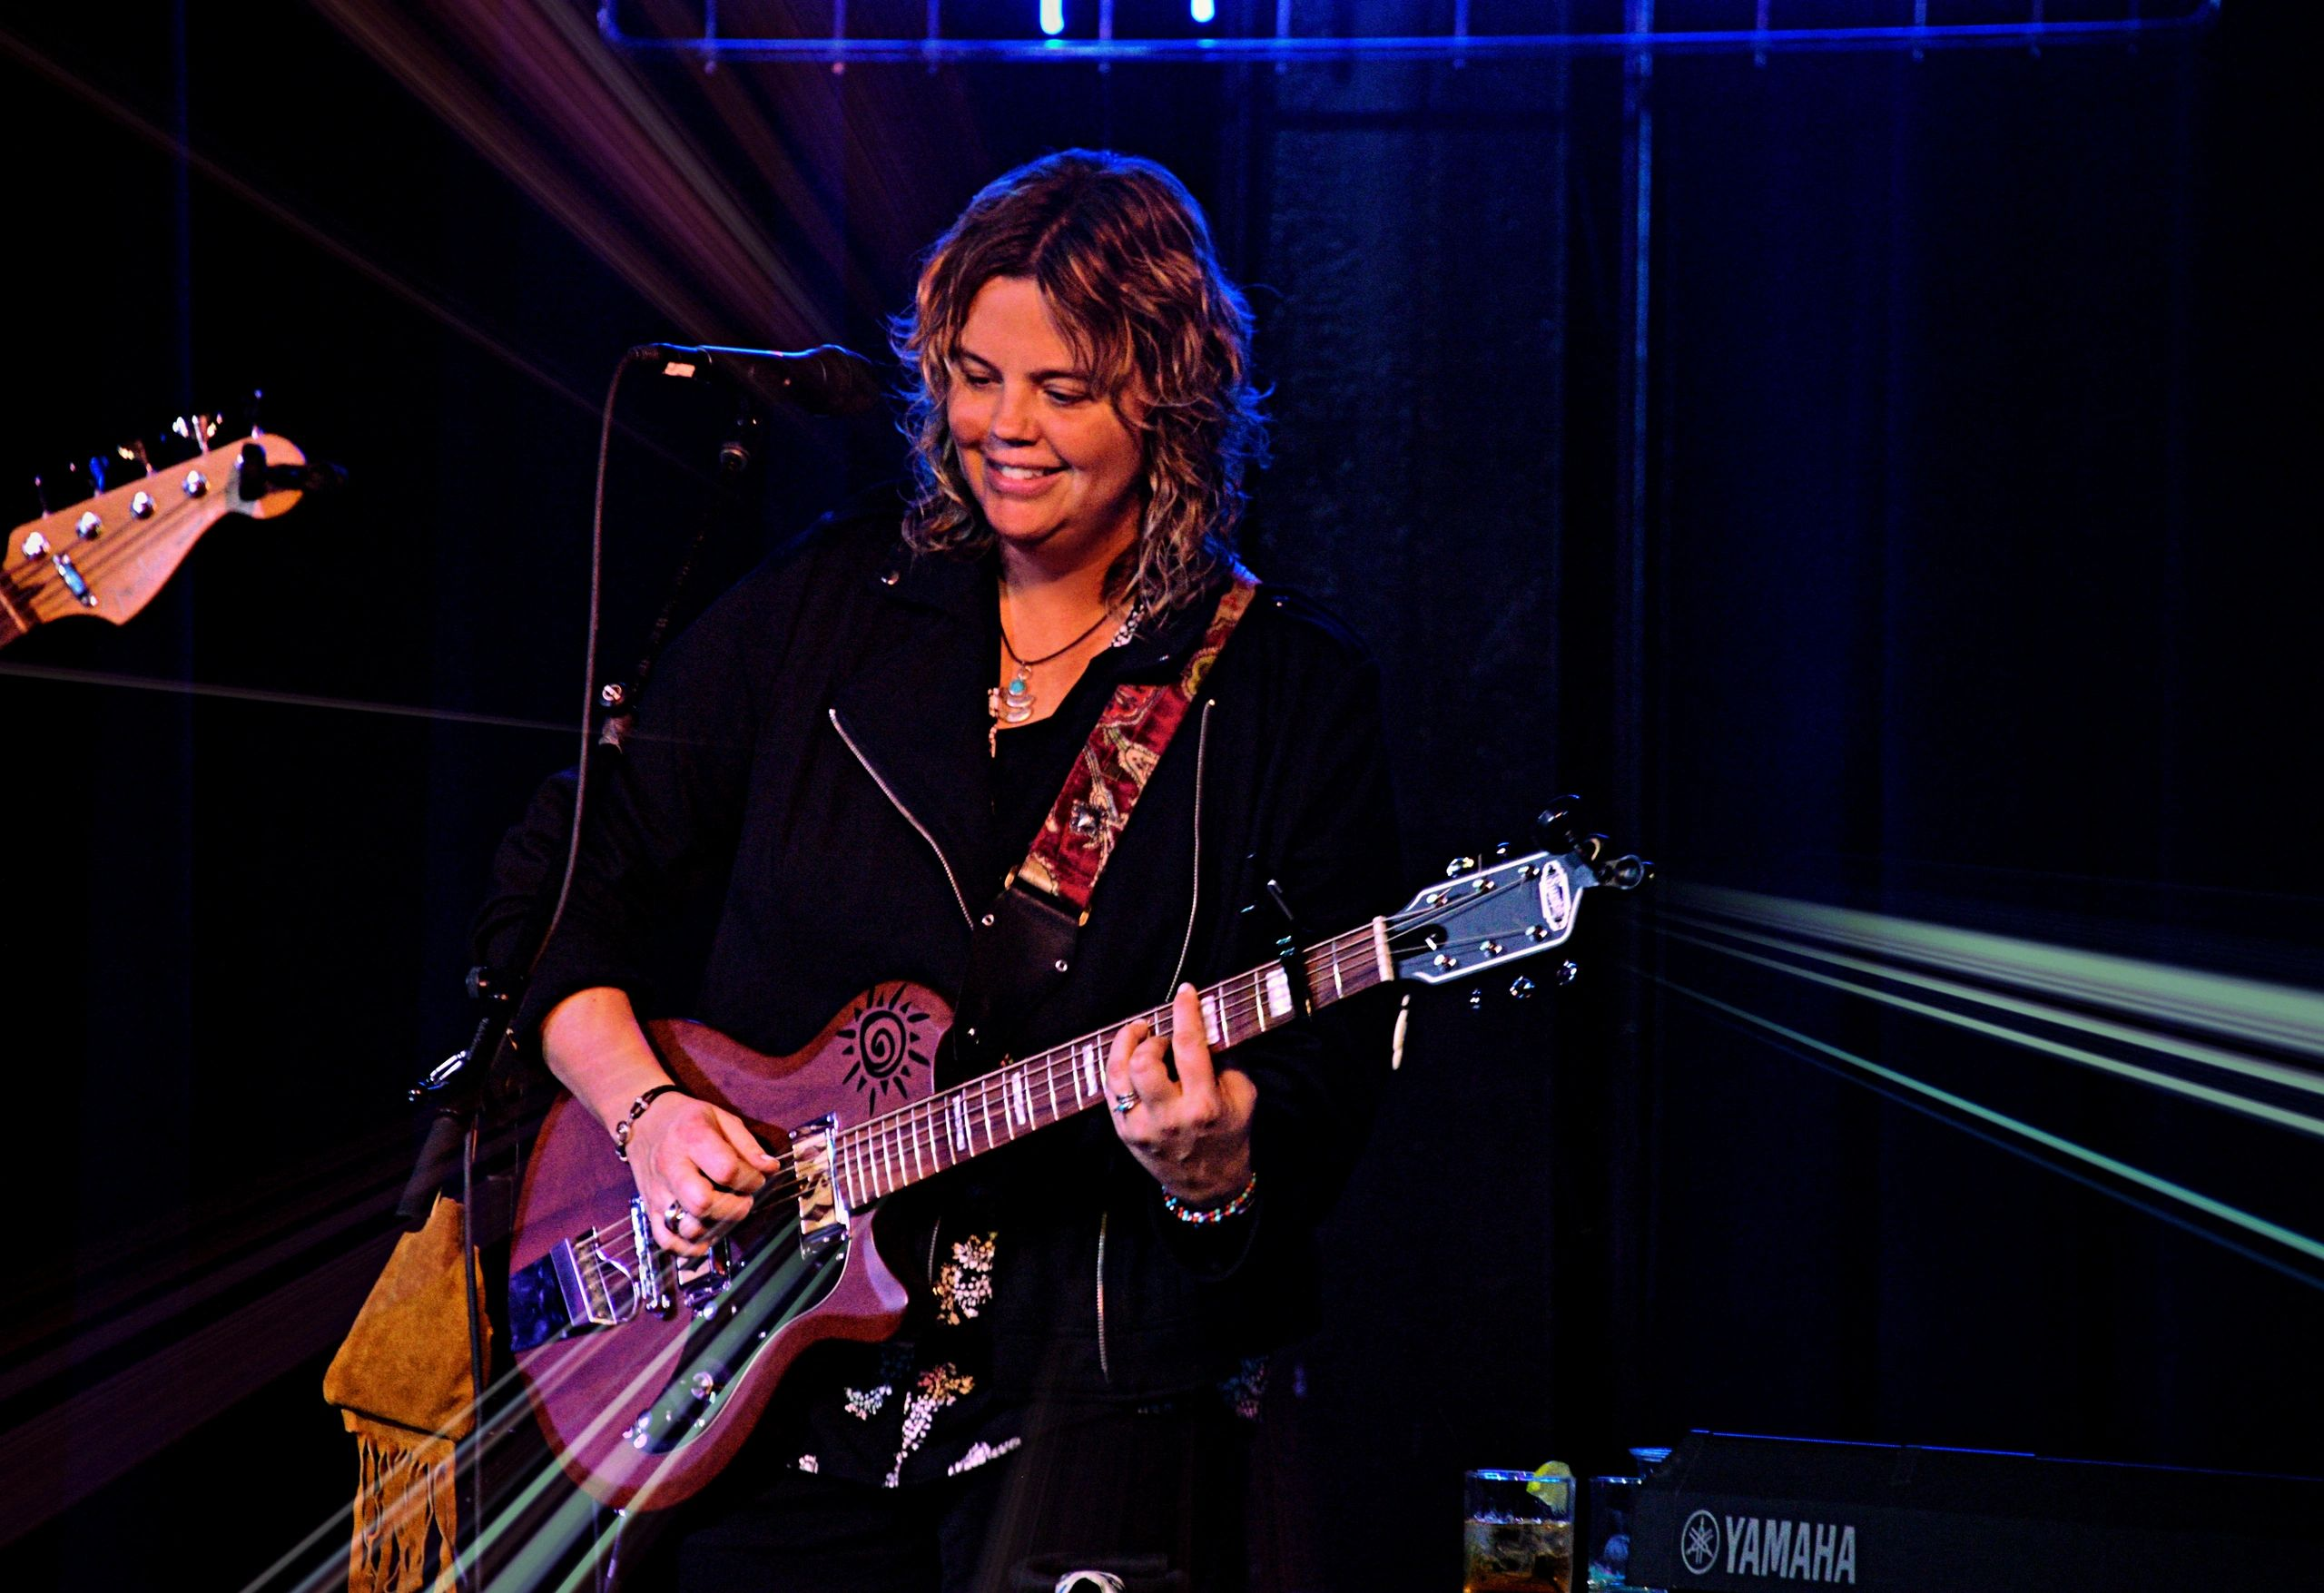 Kristine Jackson on stage at the with Supro Baritone Guitar